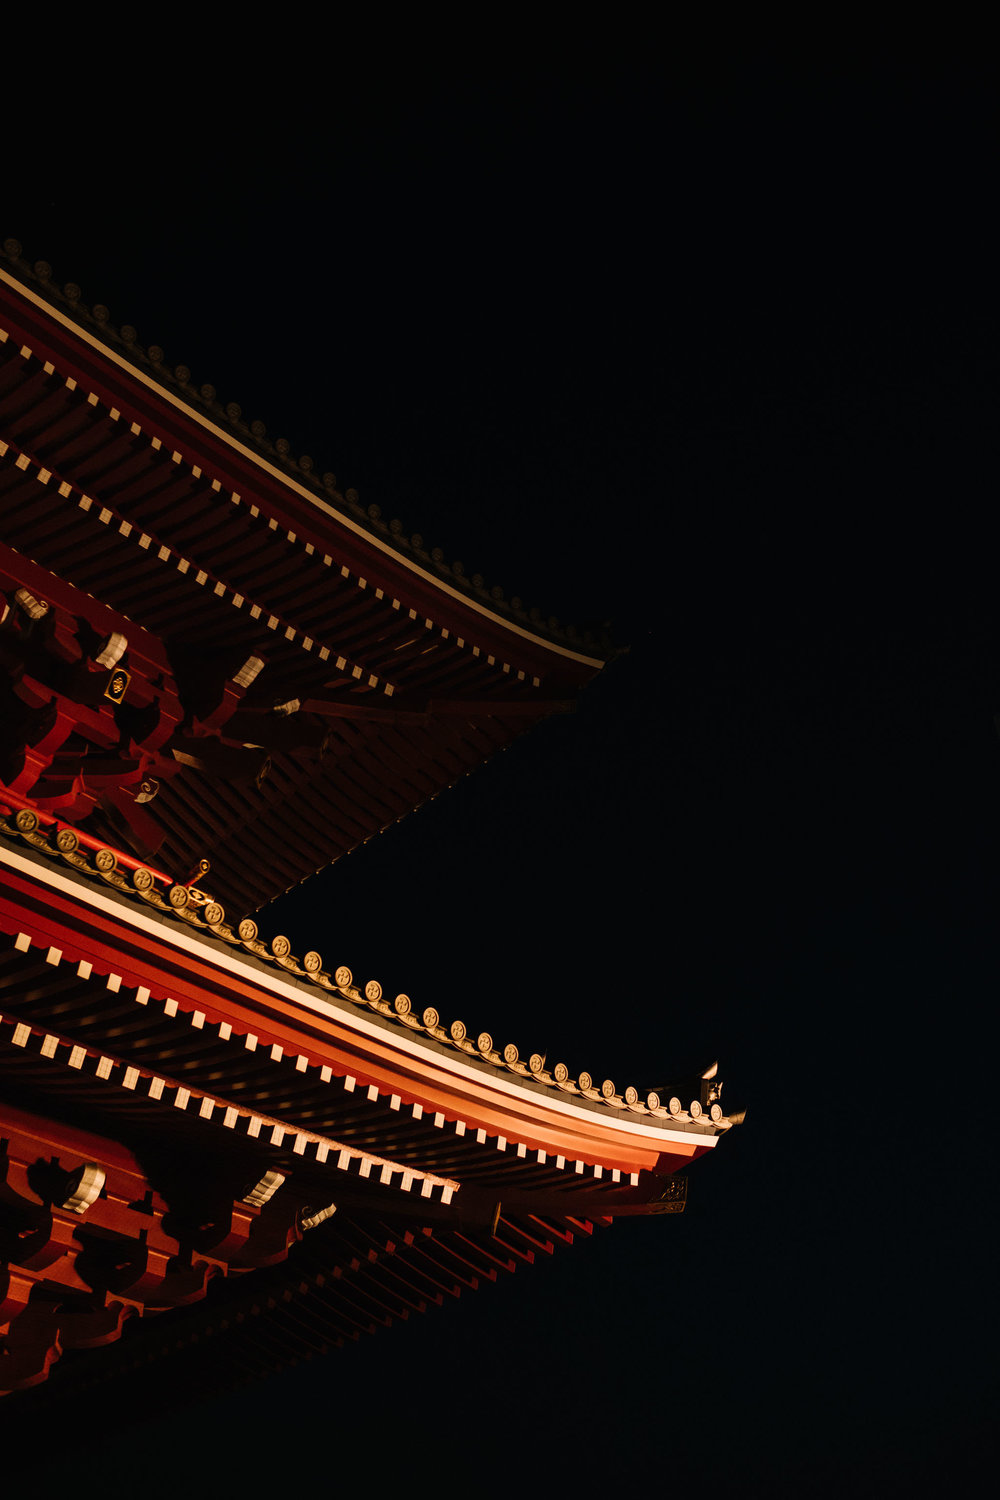 chris_eberhardt_japan_travel_reise_nippon-6.jpg